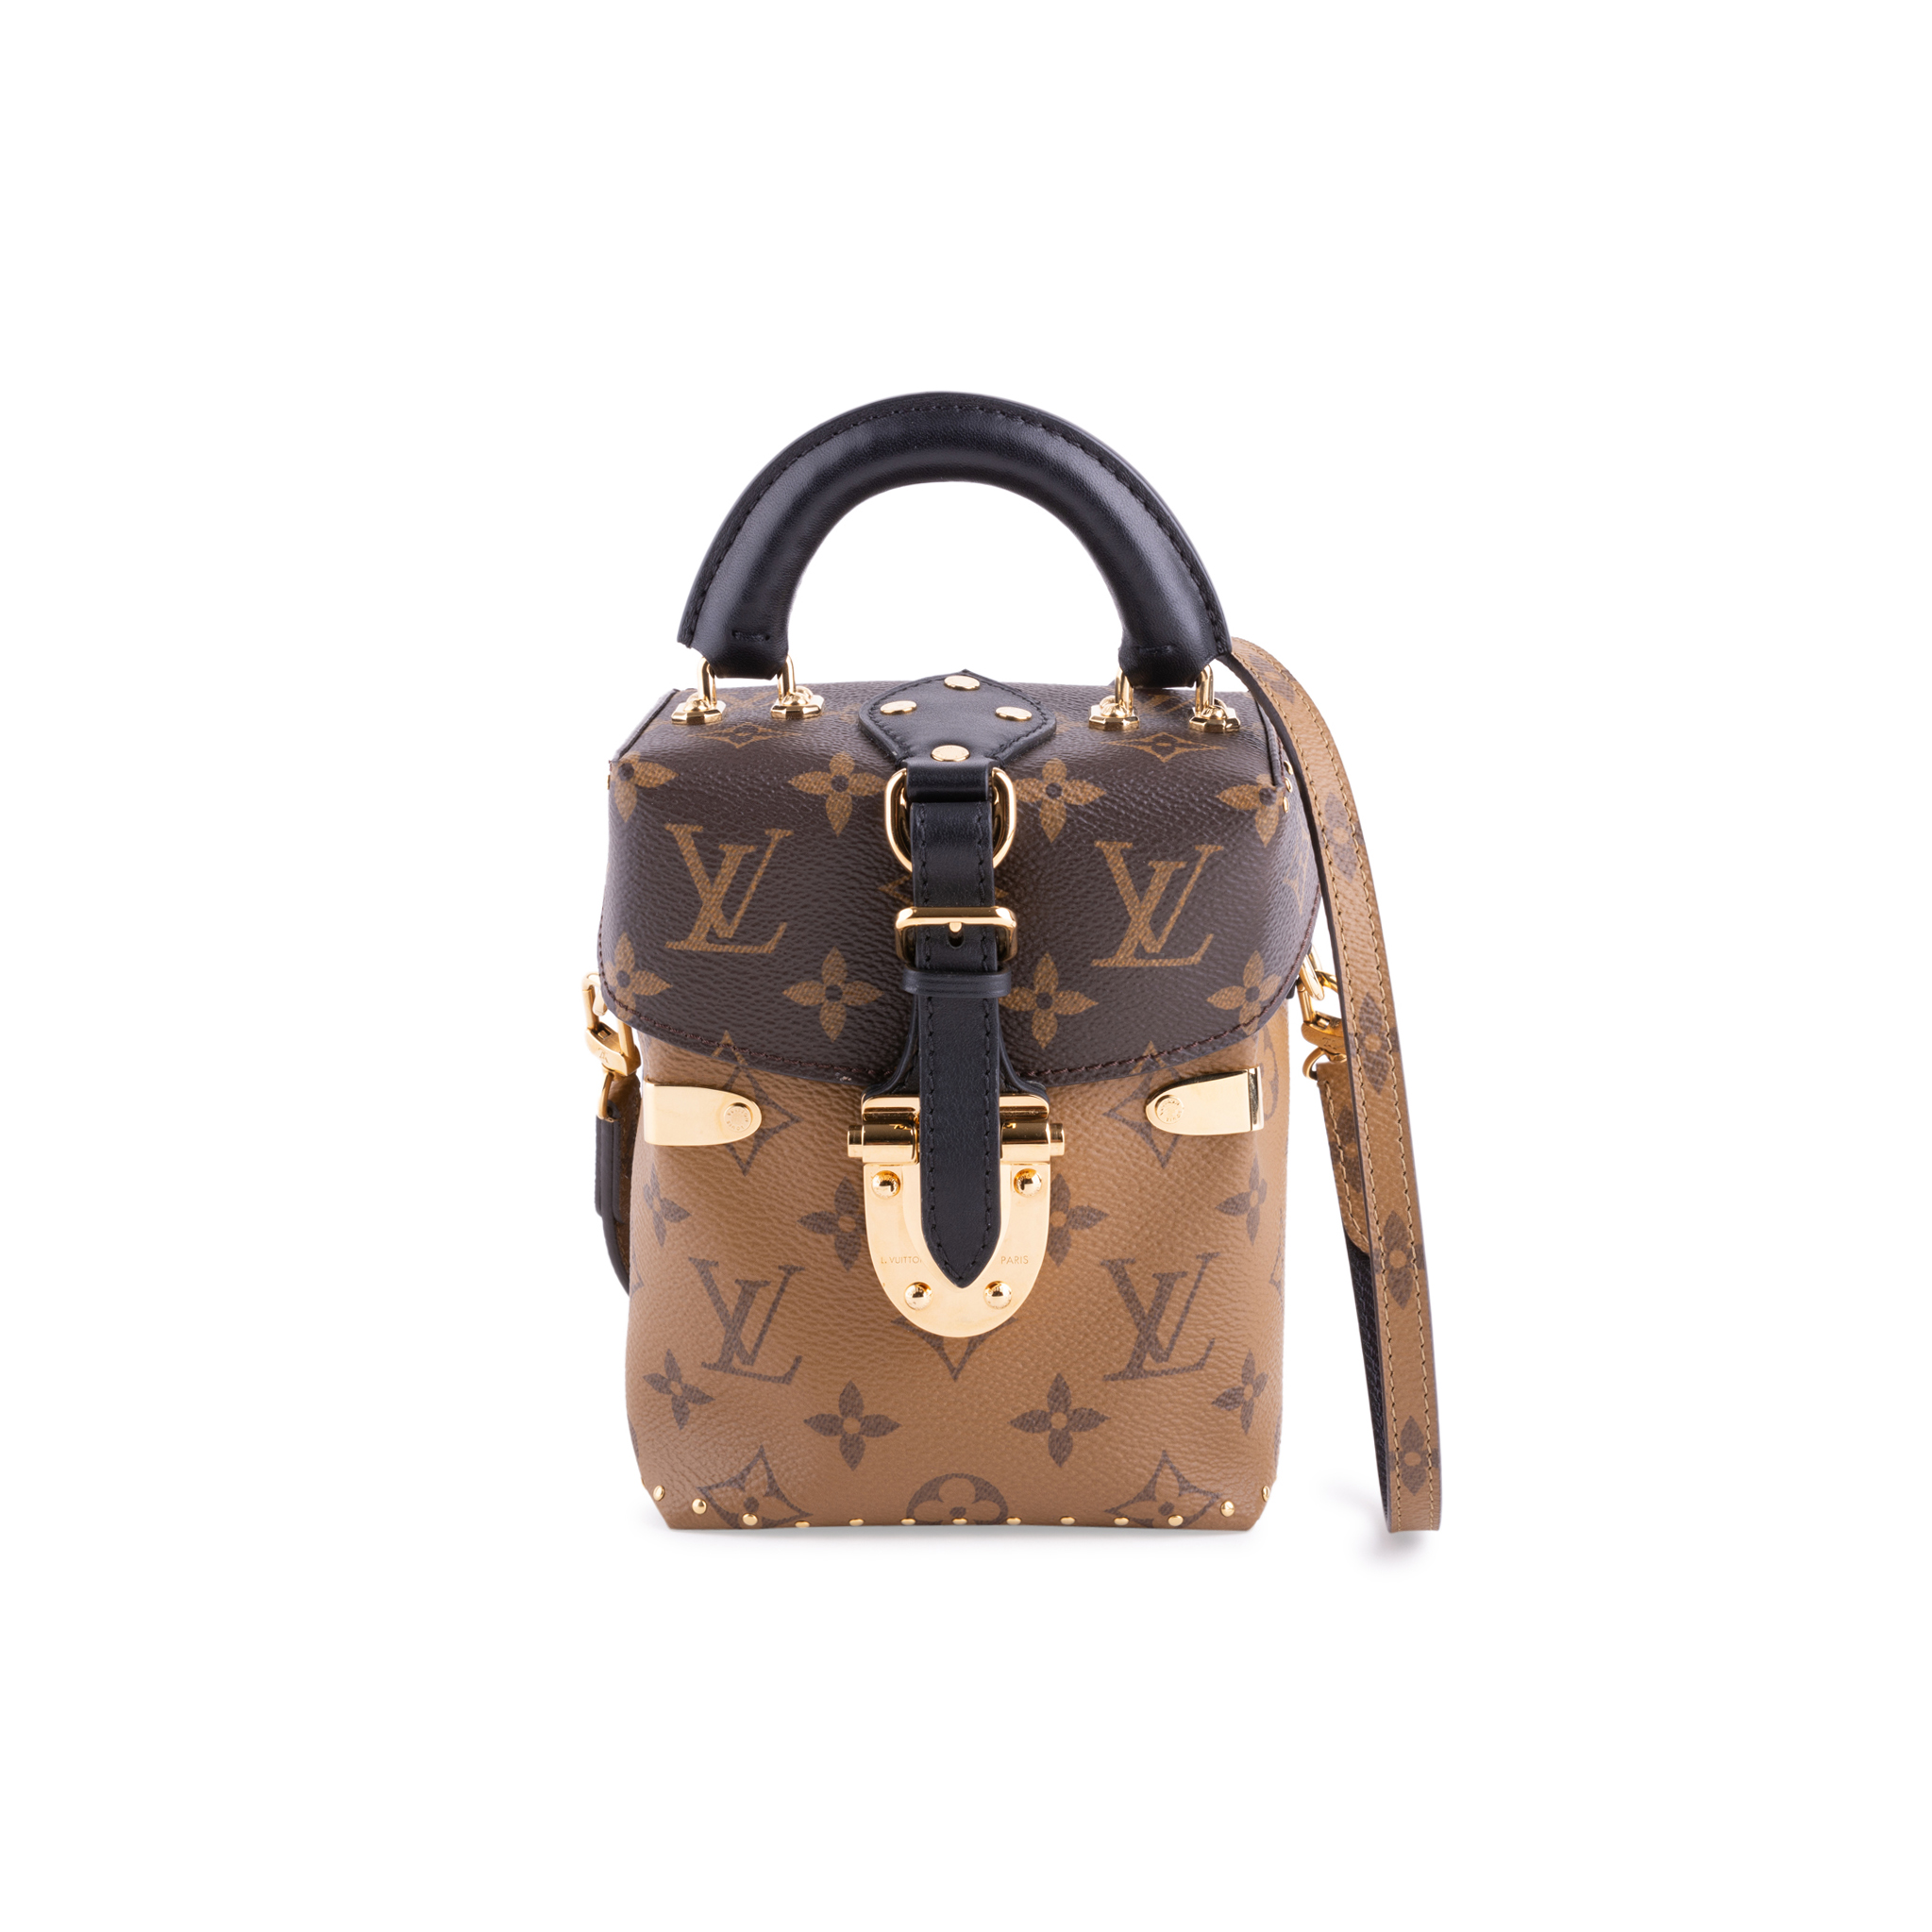 8175094466ee Authentic Second Hand Louis Vuitton Reverse Monogram Camera Box Bag  (PSS-200-01674) | THE FIFTH COLLECTION